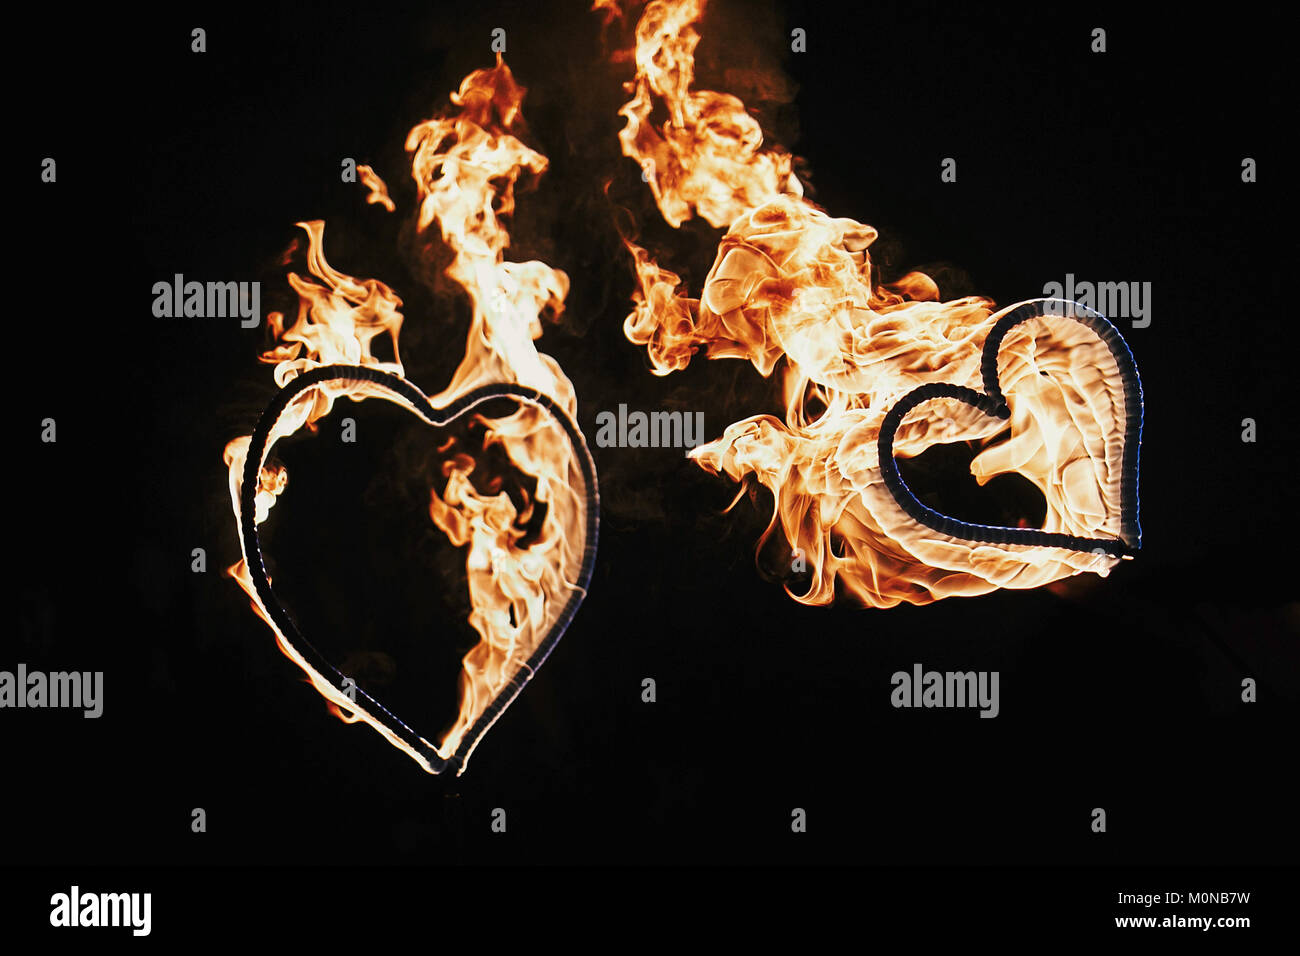 two hearts shaped firework on black background, fire show in night. happy valentine's day card. bengal fire burning heart. space for text. wedding or  Stock Photo